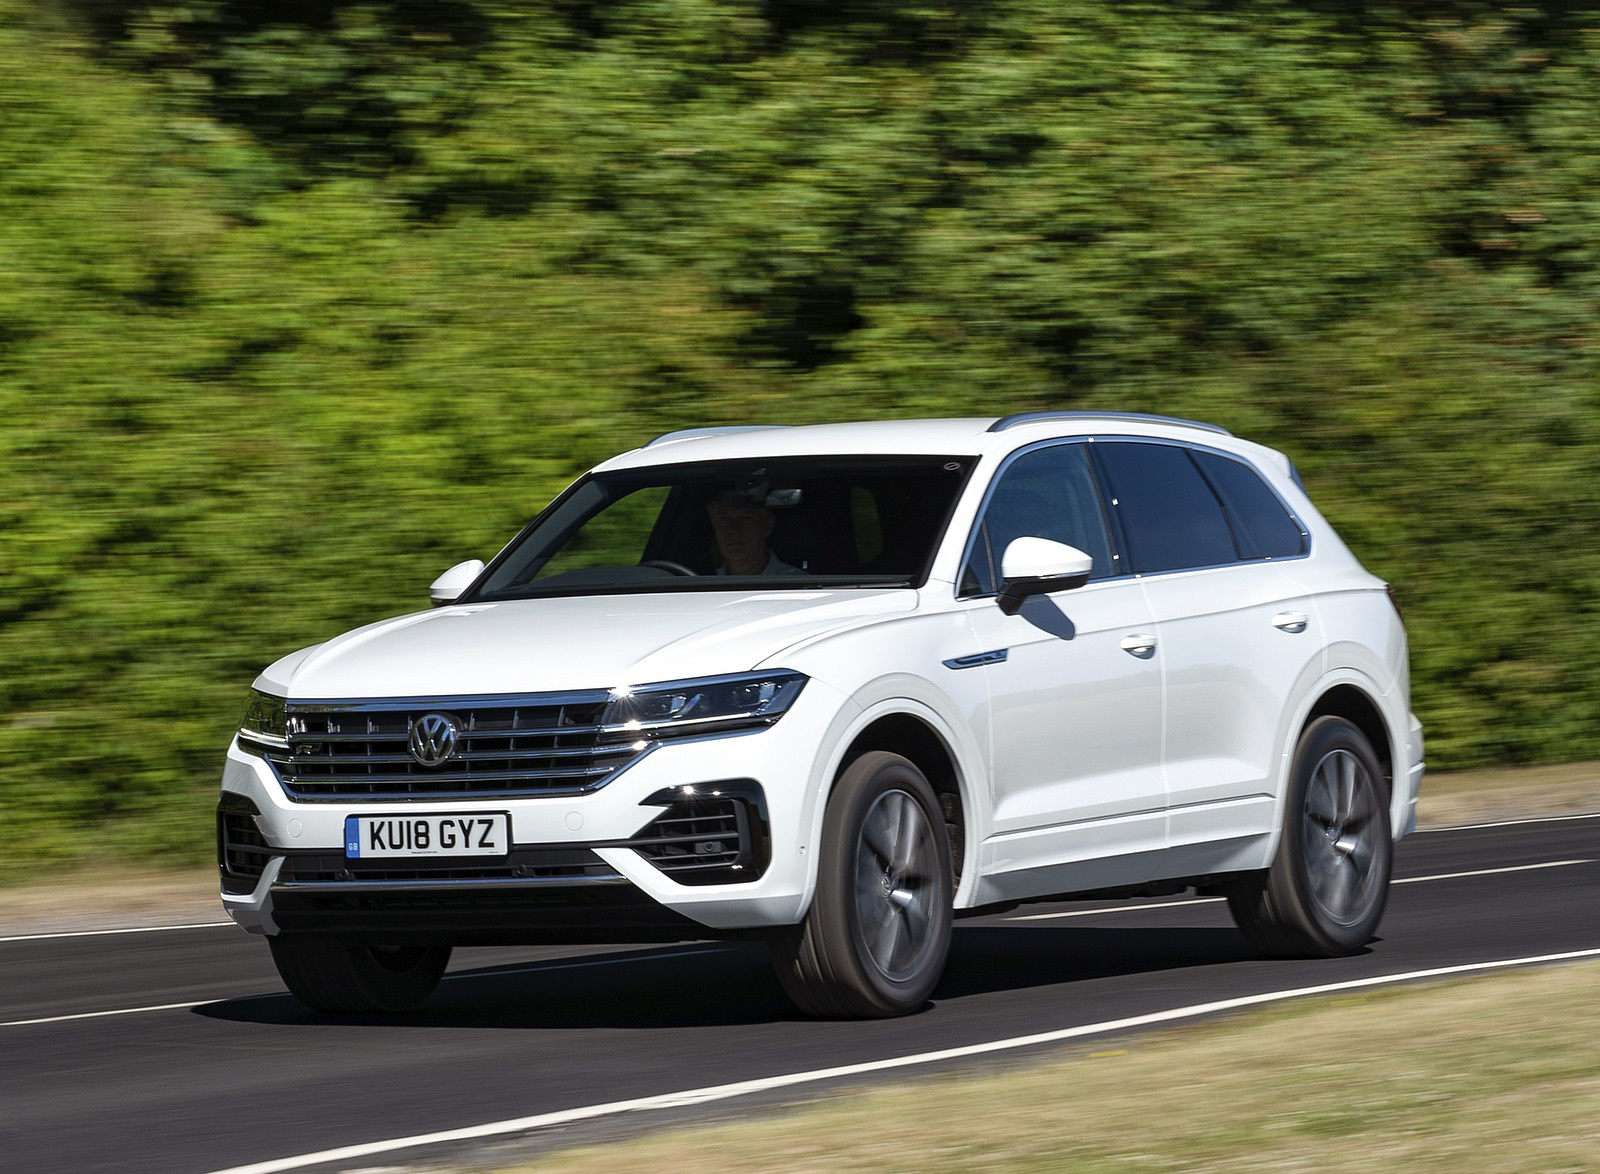 2019 Volkswagen Touareg V6 TDI R-Line (UK-Spec) Front Three-Quarter Wallpapers (1)